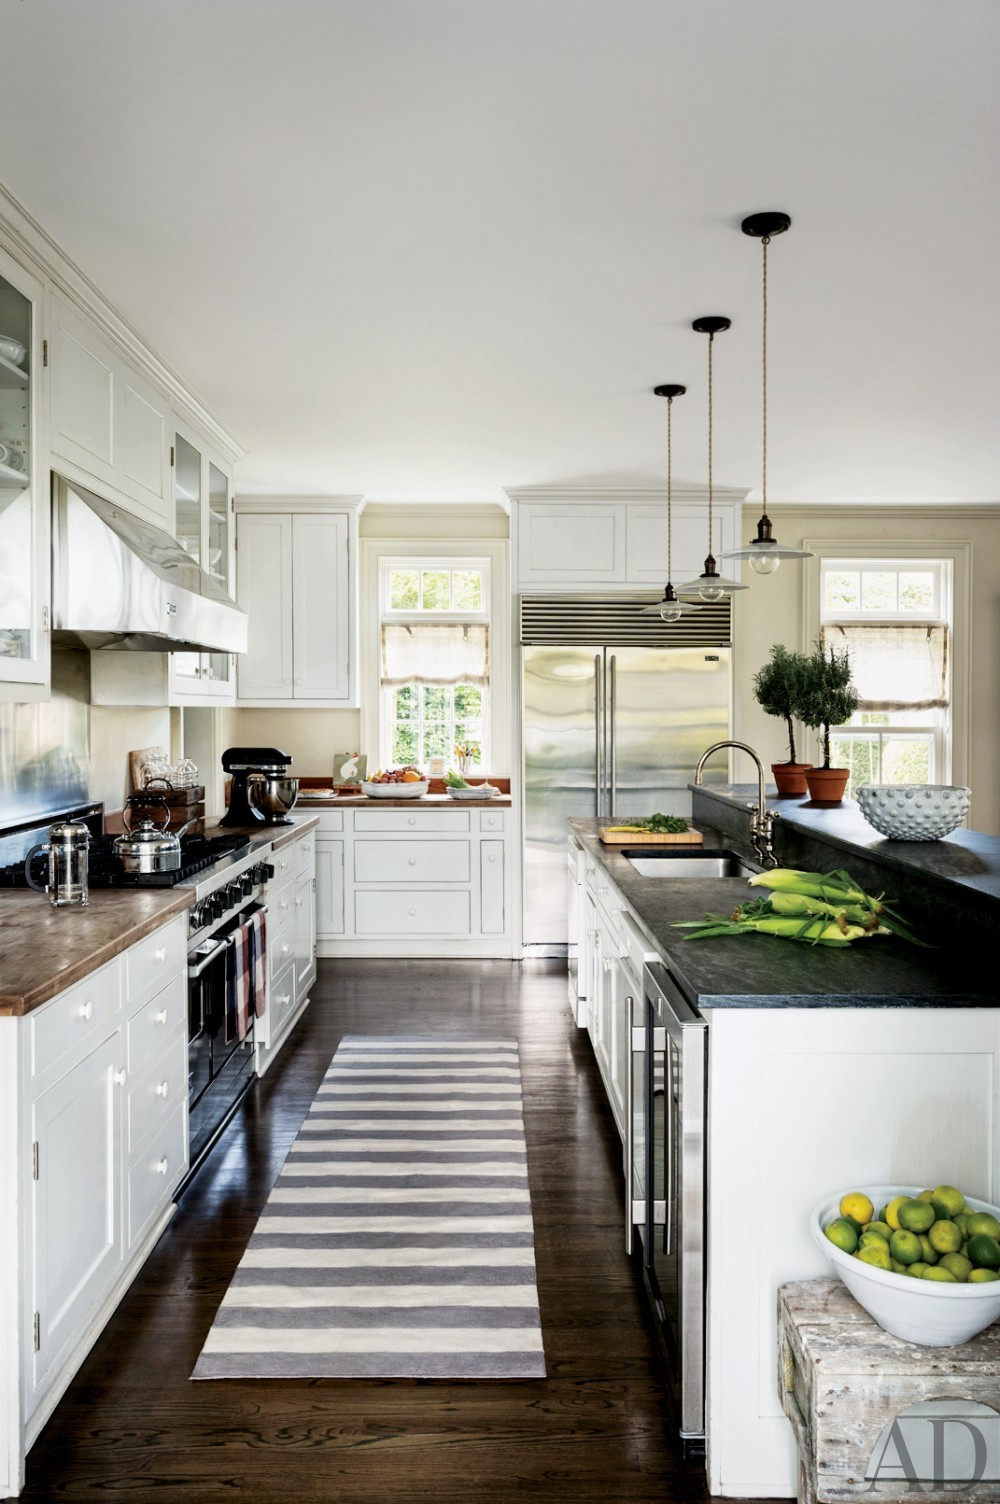 Contemporary Kitchen by Rebecca Bond in Bridgehampton, New York